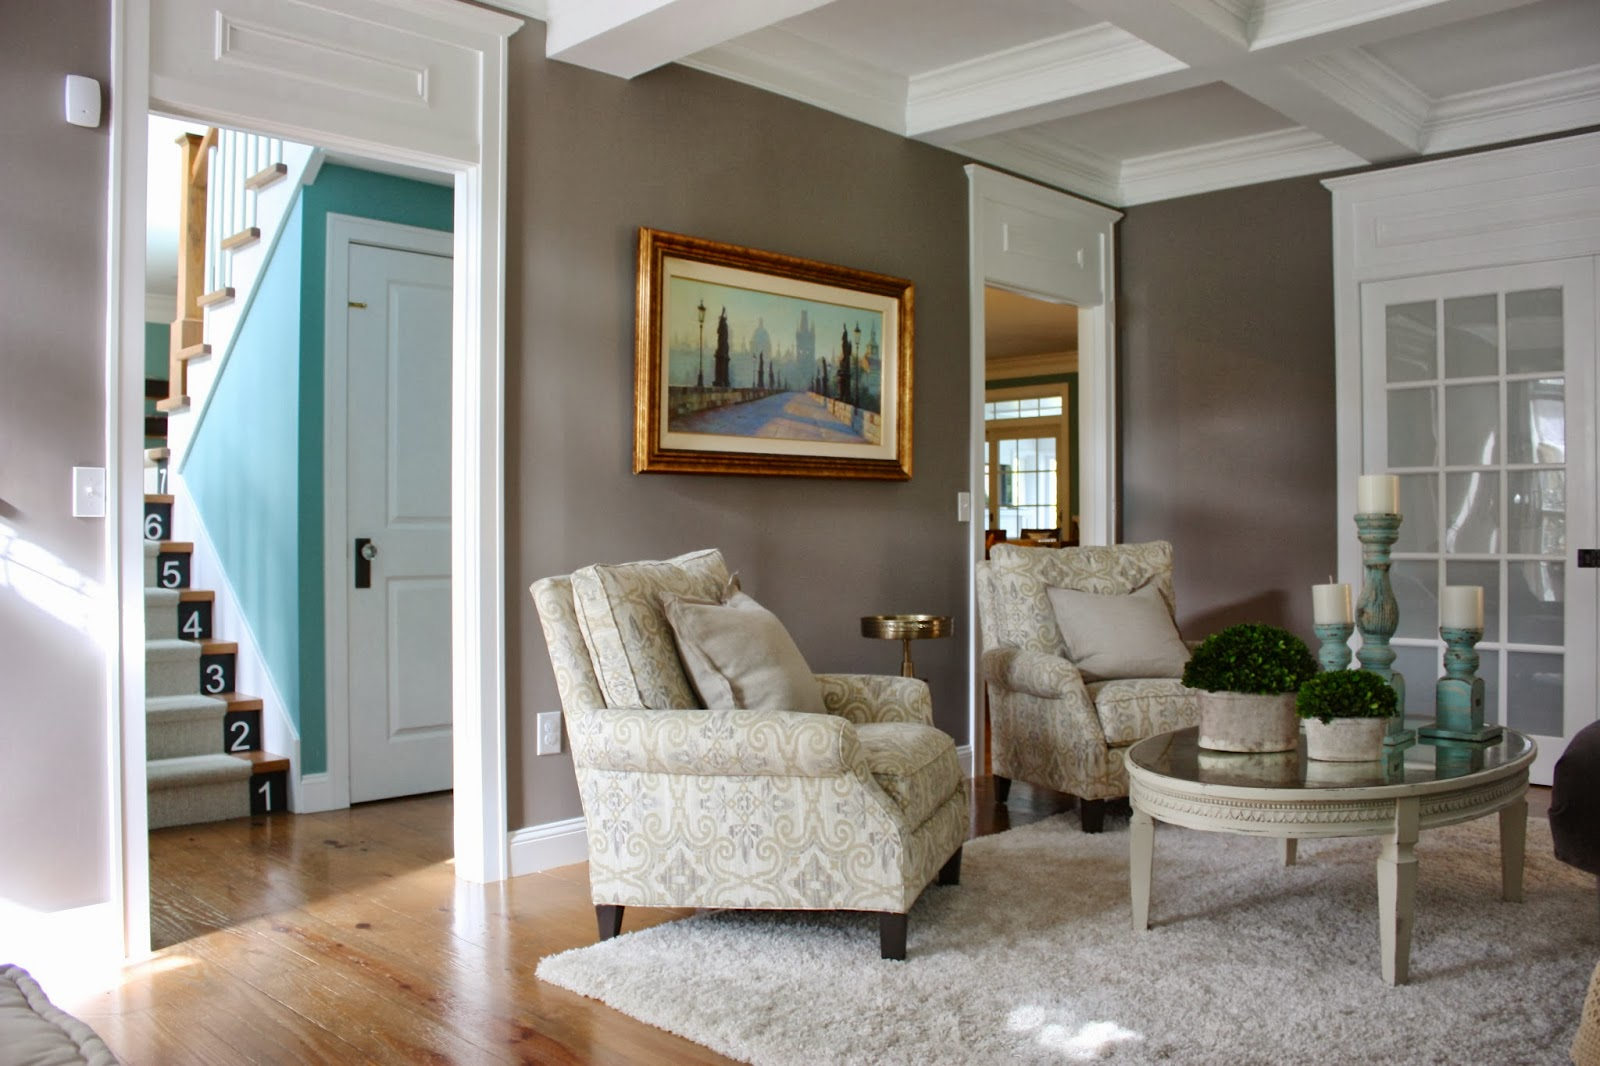 Delicieux The Yellow Cape Cod: Before/After Living Room Makeover~A Design Plan Comes  To Life